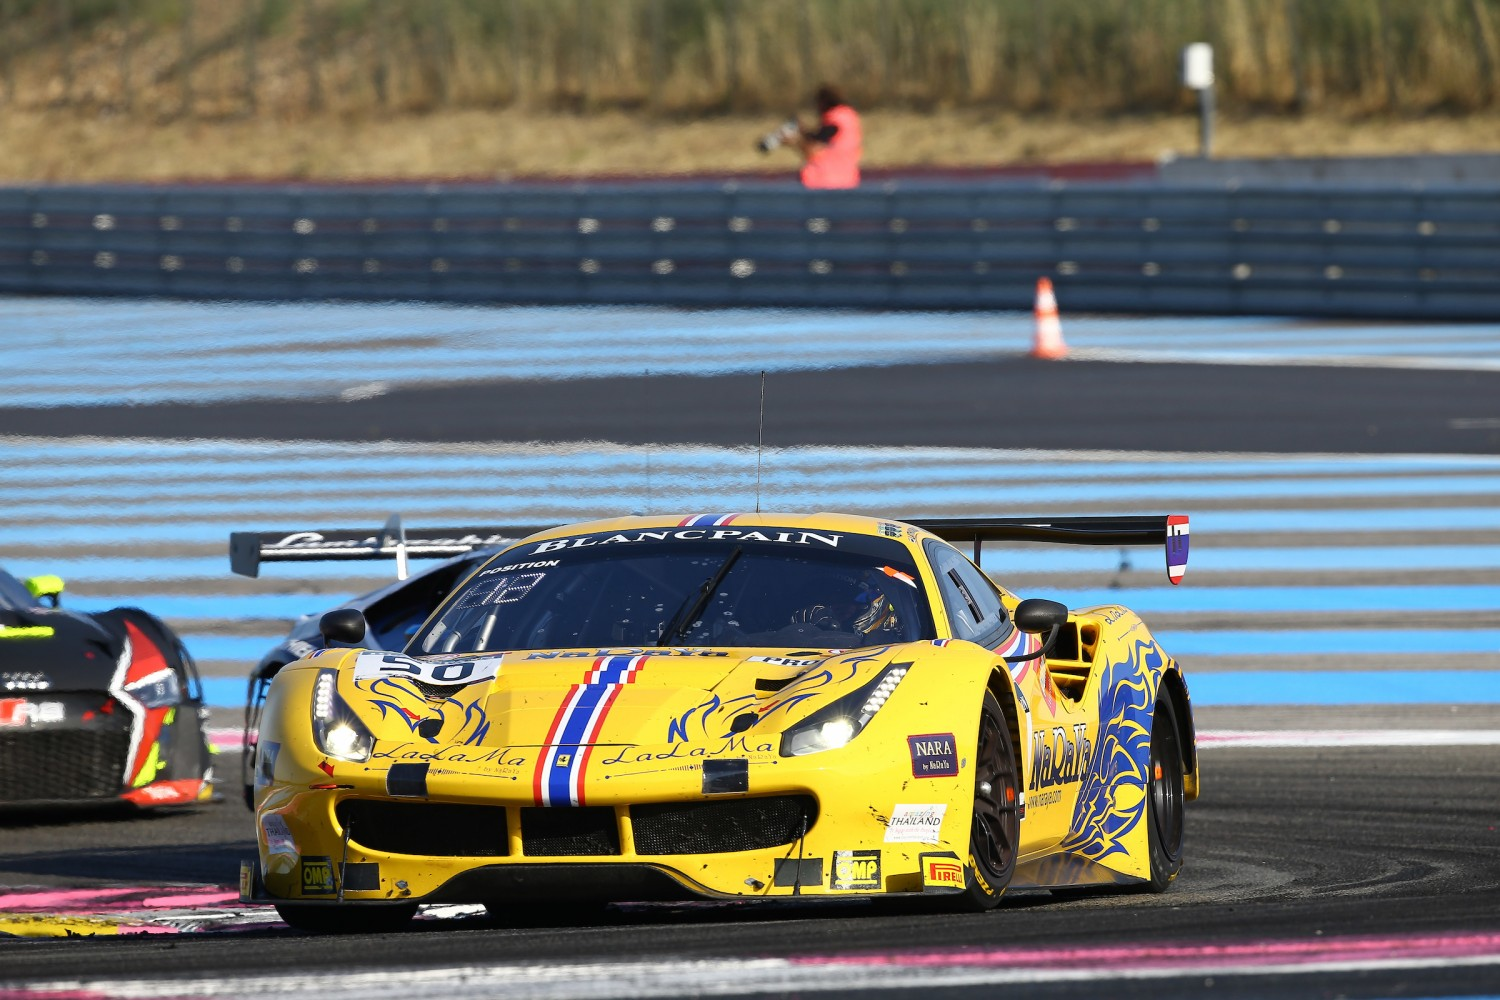 Top-10 of 2016: Alessandro Pier Guidi at Paul Ricard